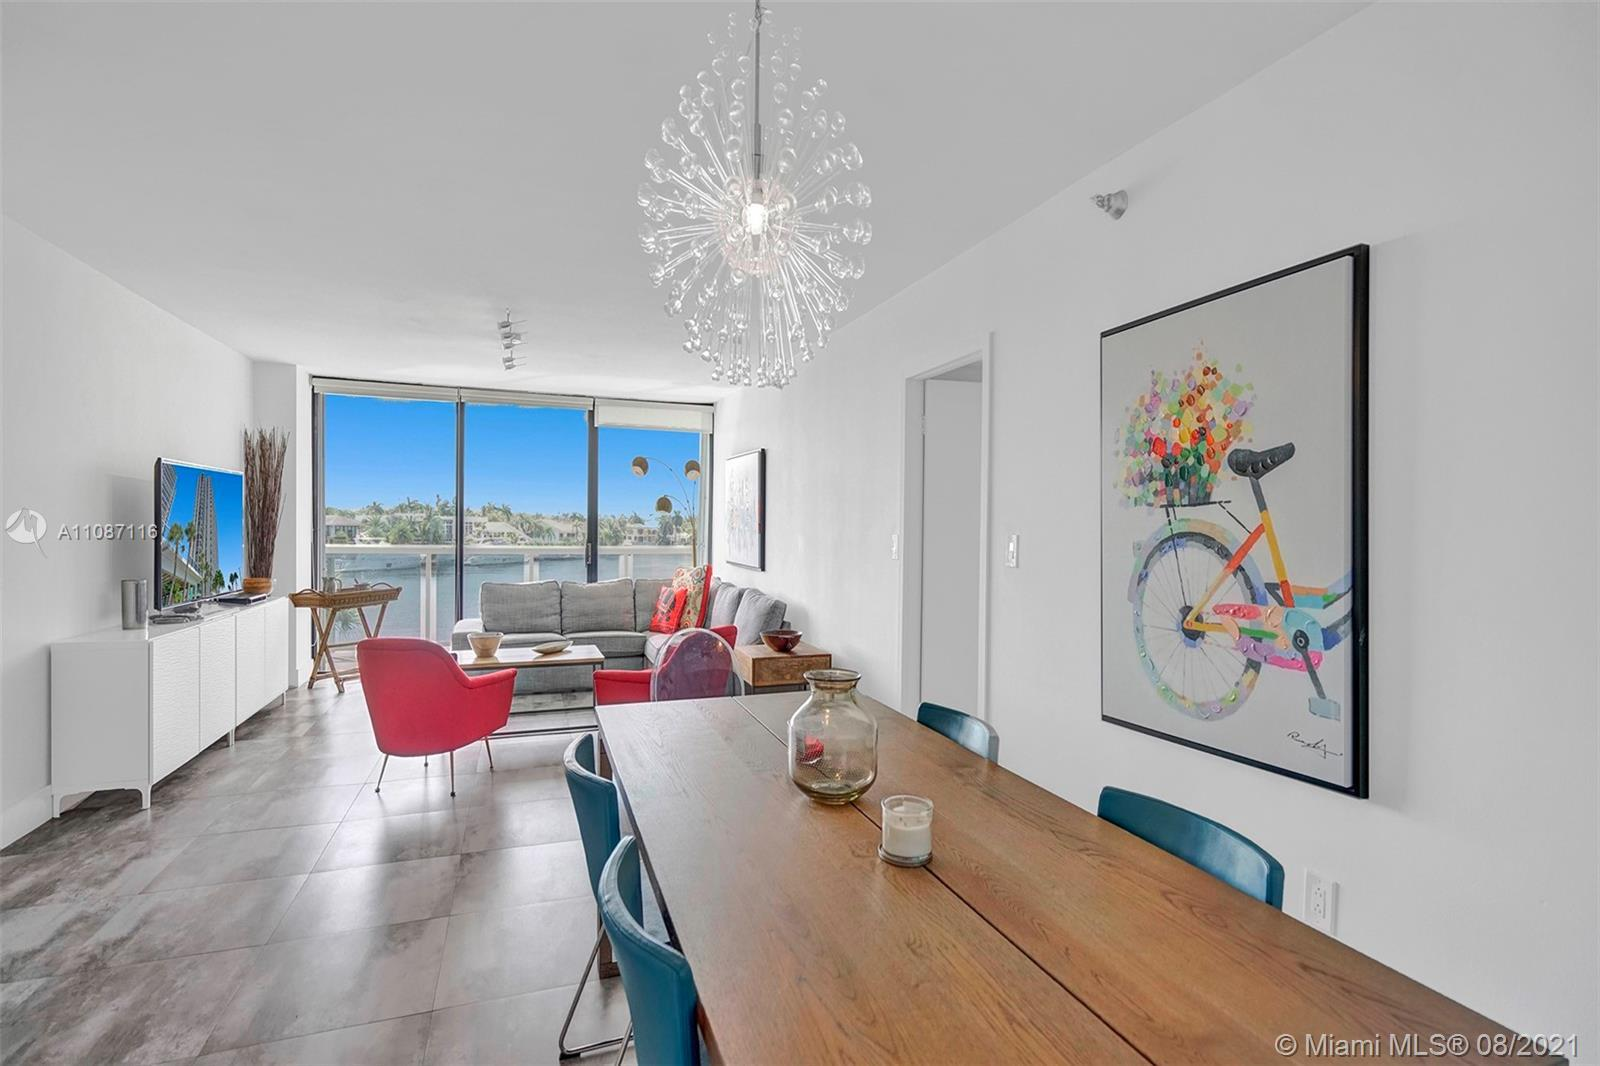 Gorgeous 2/2 unit with amazing intracoastal views from every corner overlooking Golden Beach multi m